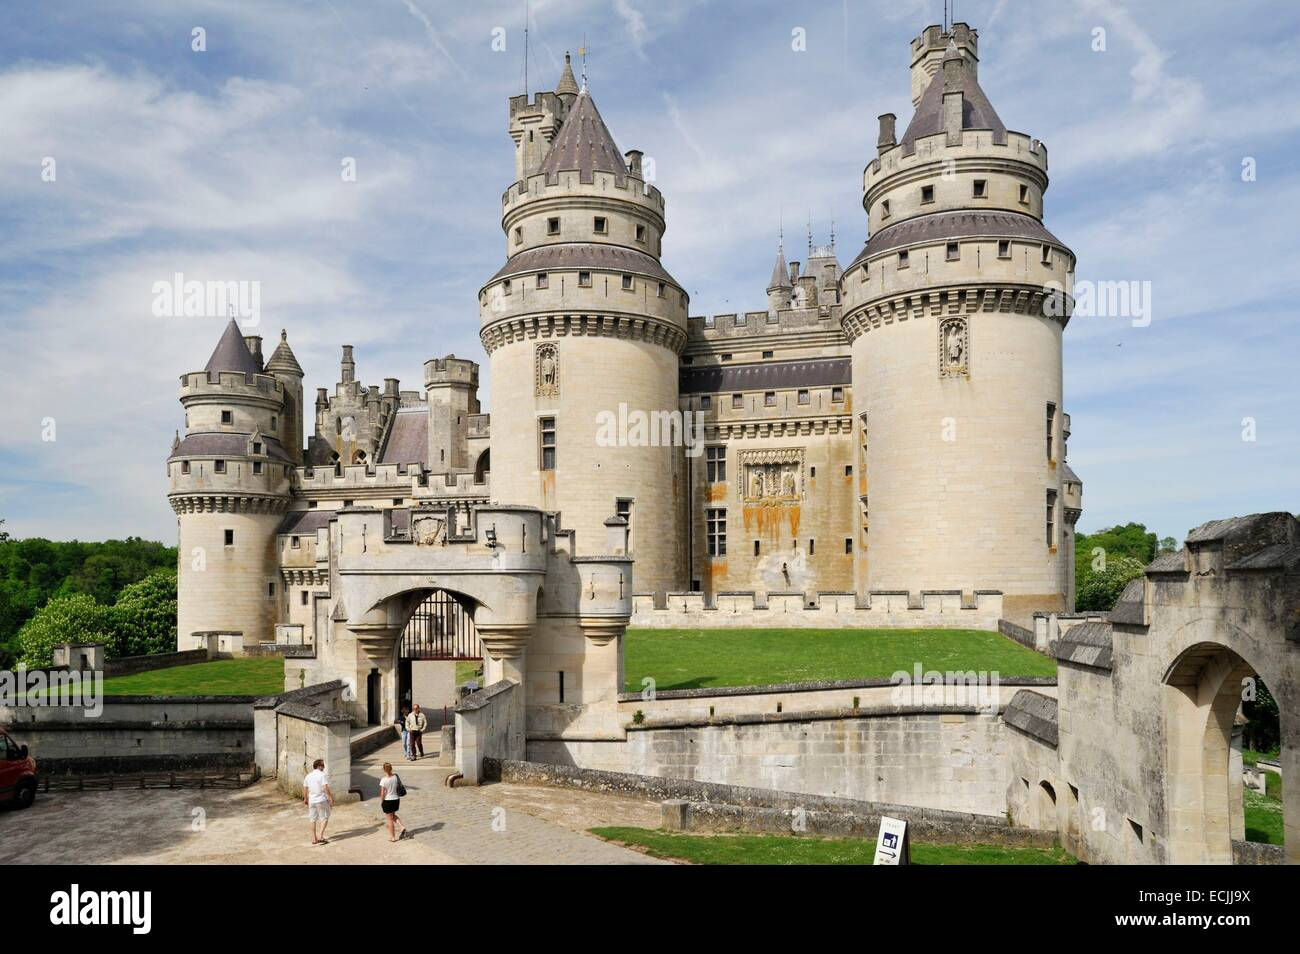 france oise pierrefonds castle built in the 14th century by louis stock photo royalty free. Black Bedroom Furniture Sets. Home Design Ideas